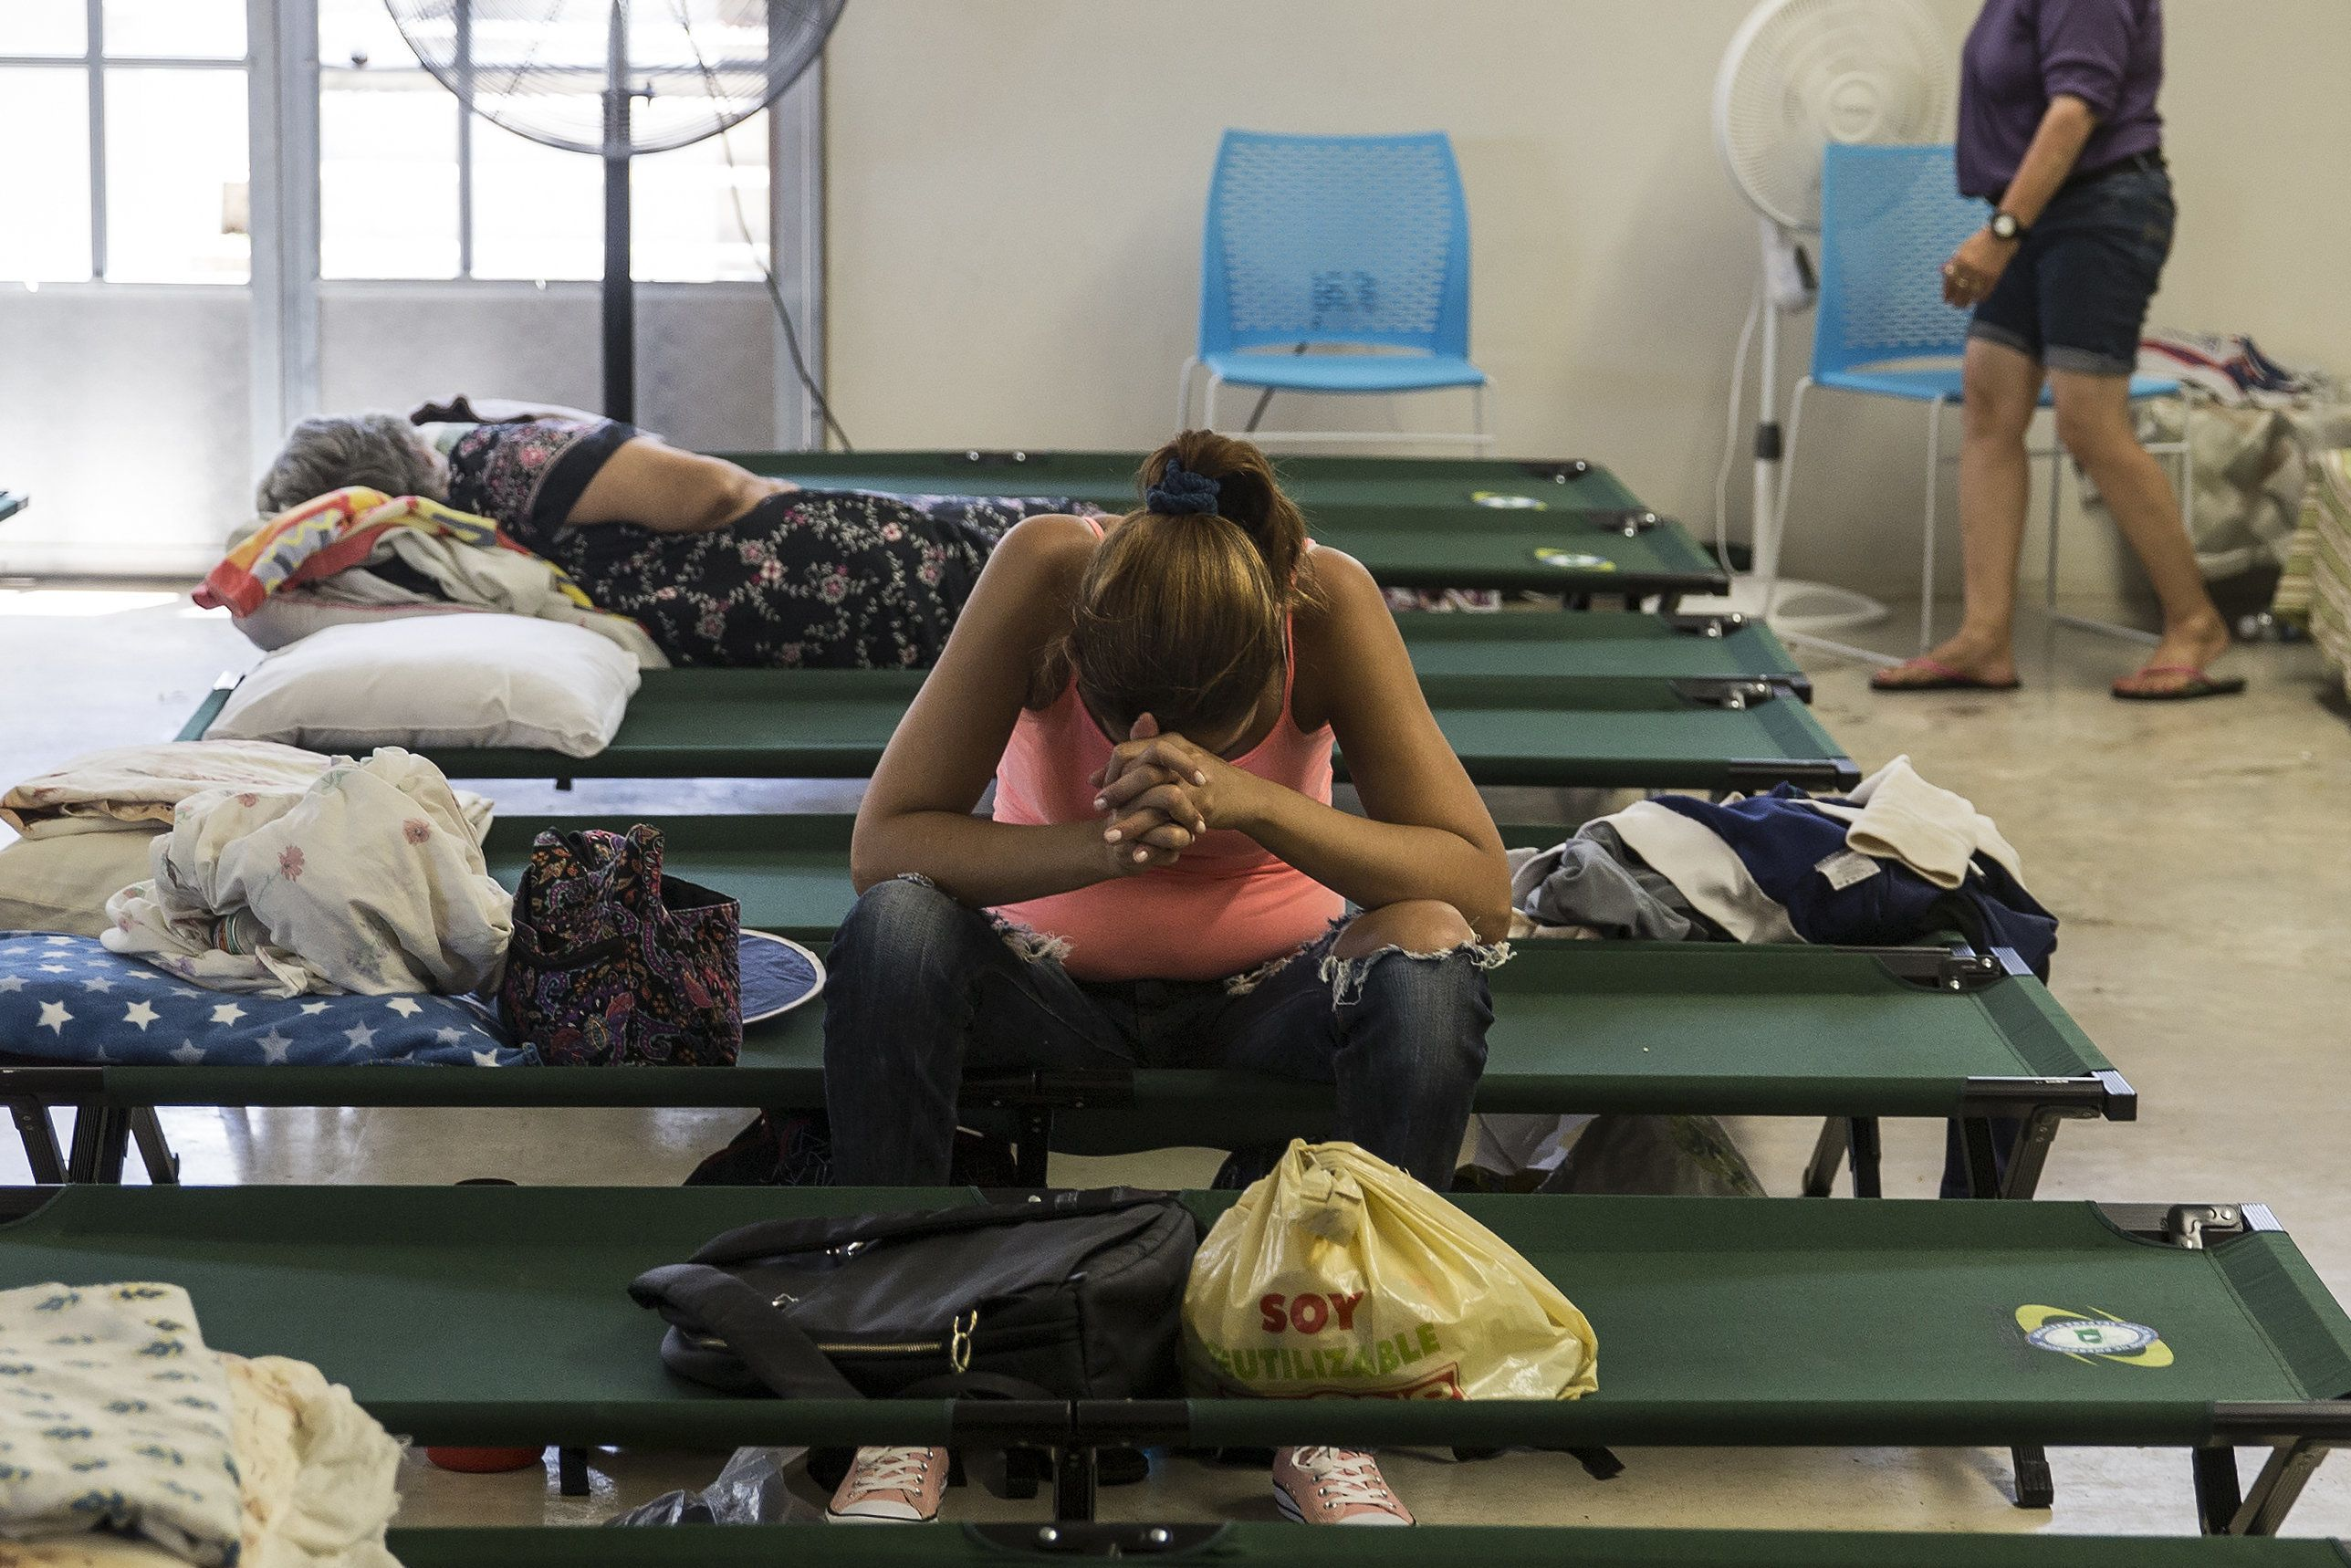 A resident sits inside a shelter after being evacuated from a home near the damaged Guajataca Dam after Hurricane Maria in Isabela, Puerto Rico, on Saturday, Sept. 23, 2017. Amid their struggles to recover from Hurricane Maria, some Puerto Rico residents found it befuddling that President Donald Trump fired off a number of Twitter rants about professional athletes on Saturday -- yet made no mention of their dire situation. Photographer: Alex Wroblewski/Bloomberg via Getty Images